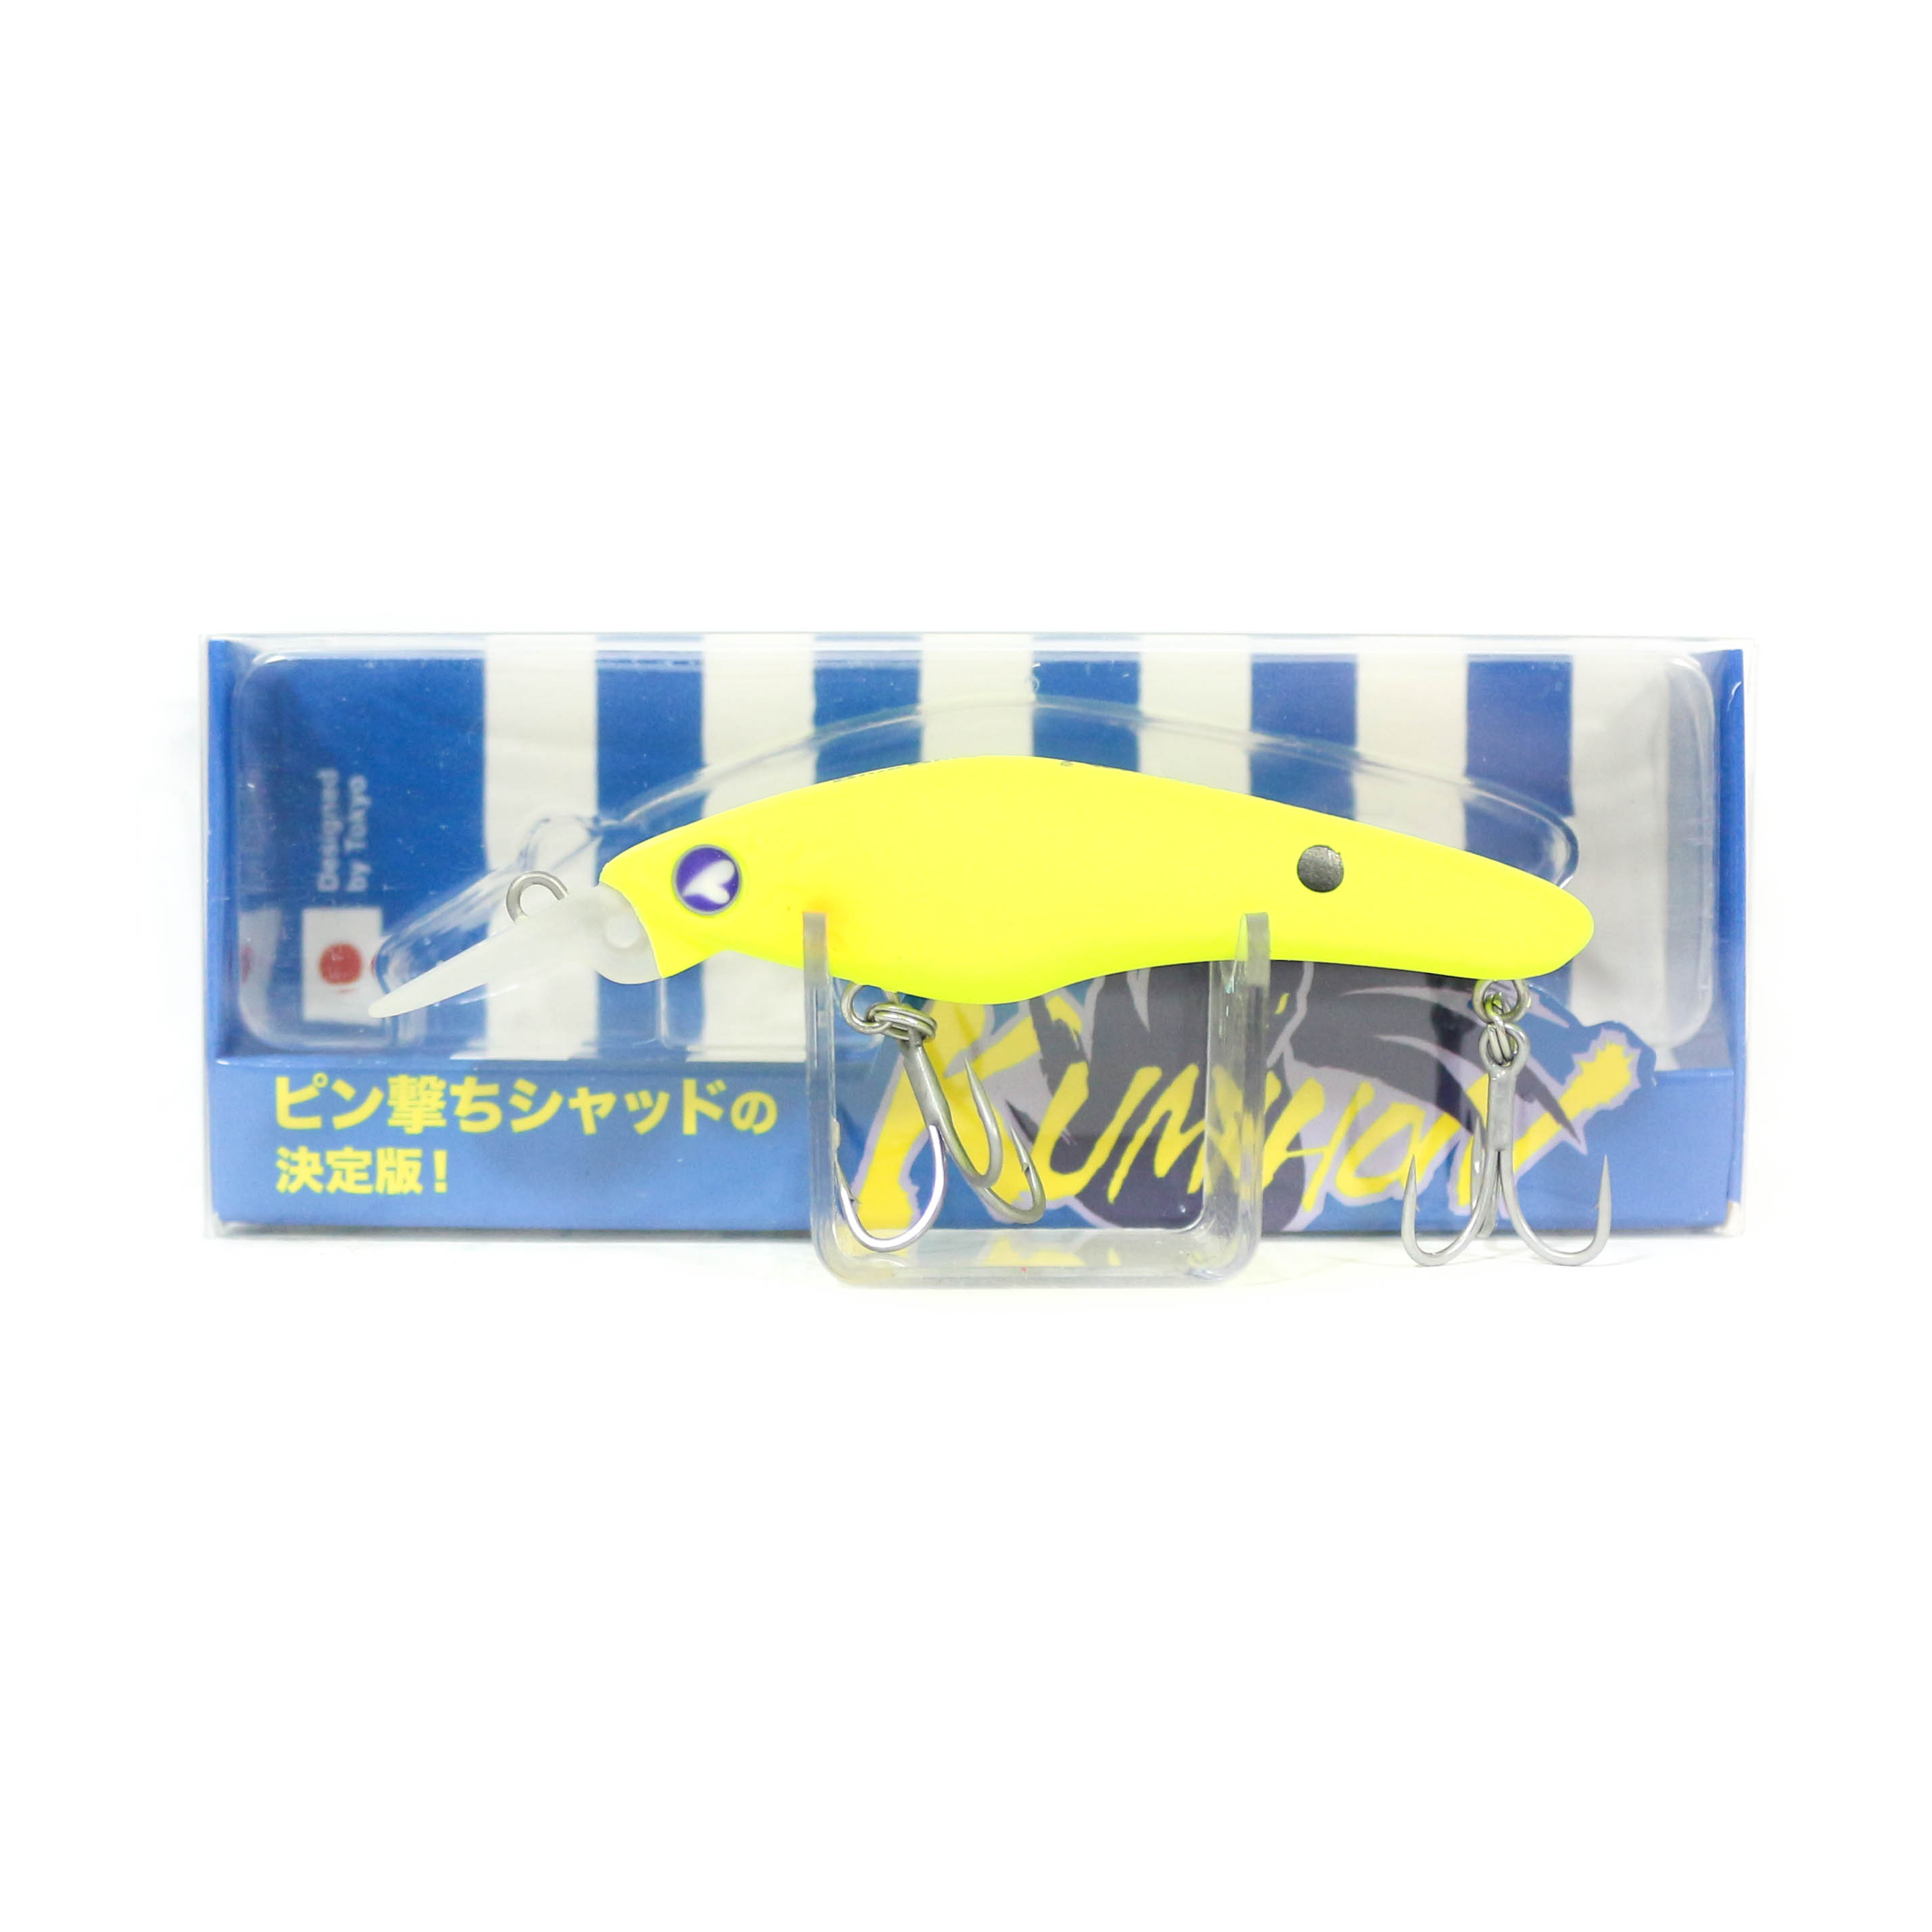 Blue Blue Kumihon 70S 9 grams Sinking Lure 08 (1641)